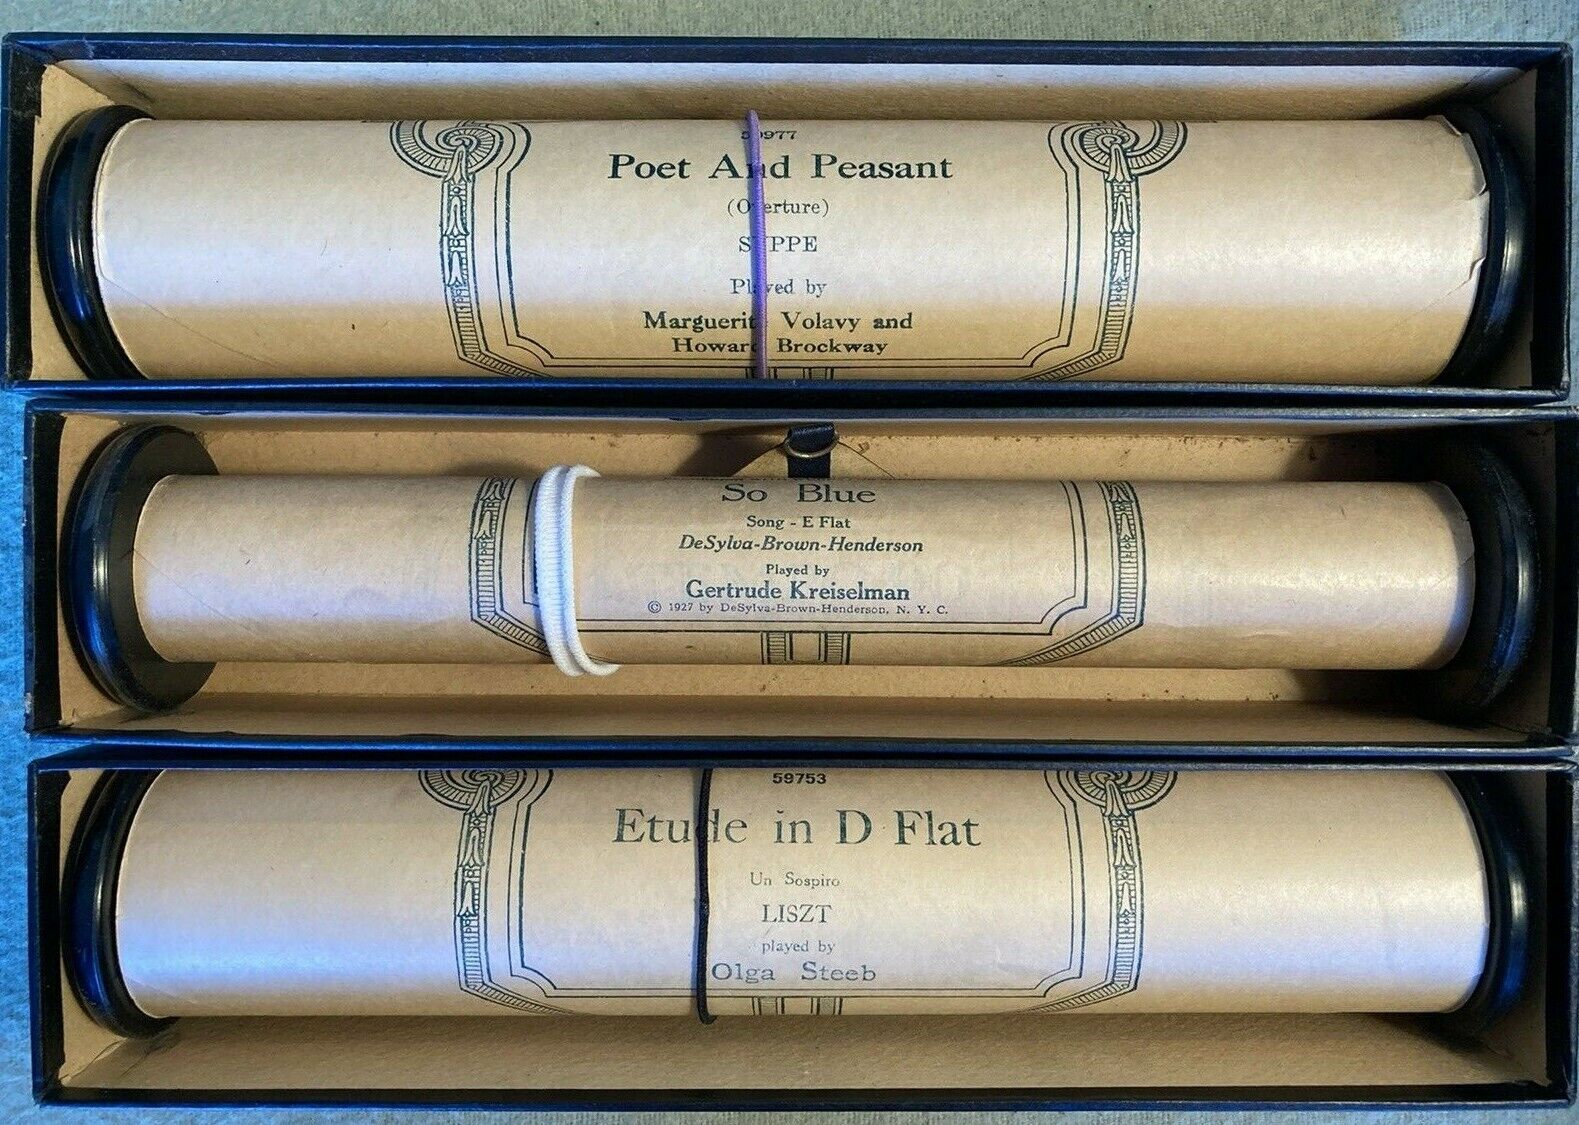 Vintage Ampico Player Piano Rolls, Previously Played - Bundle Of 3 Rolls - $31.78